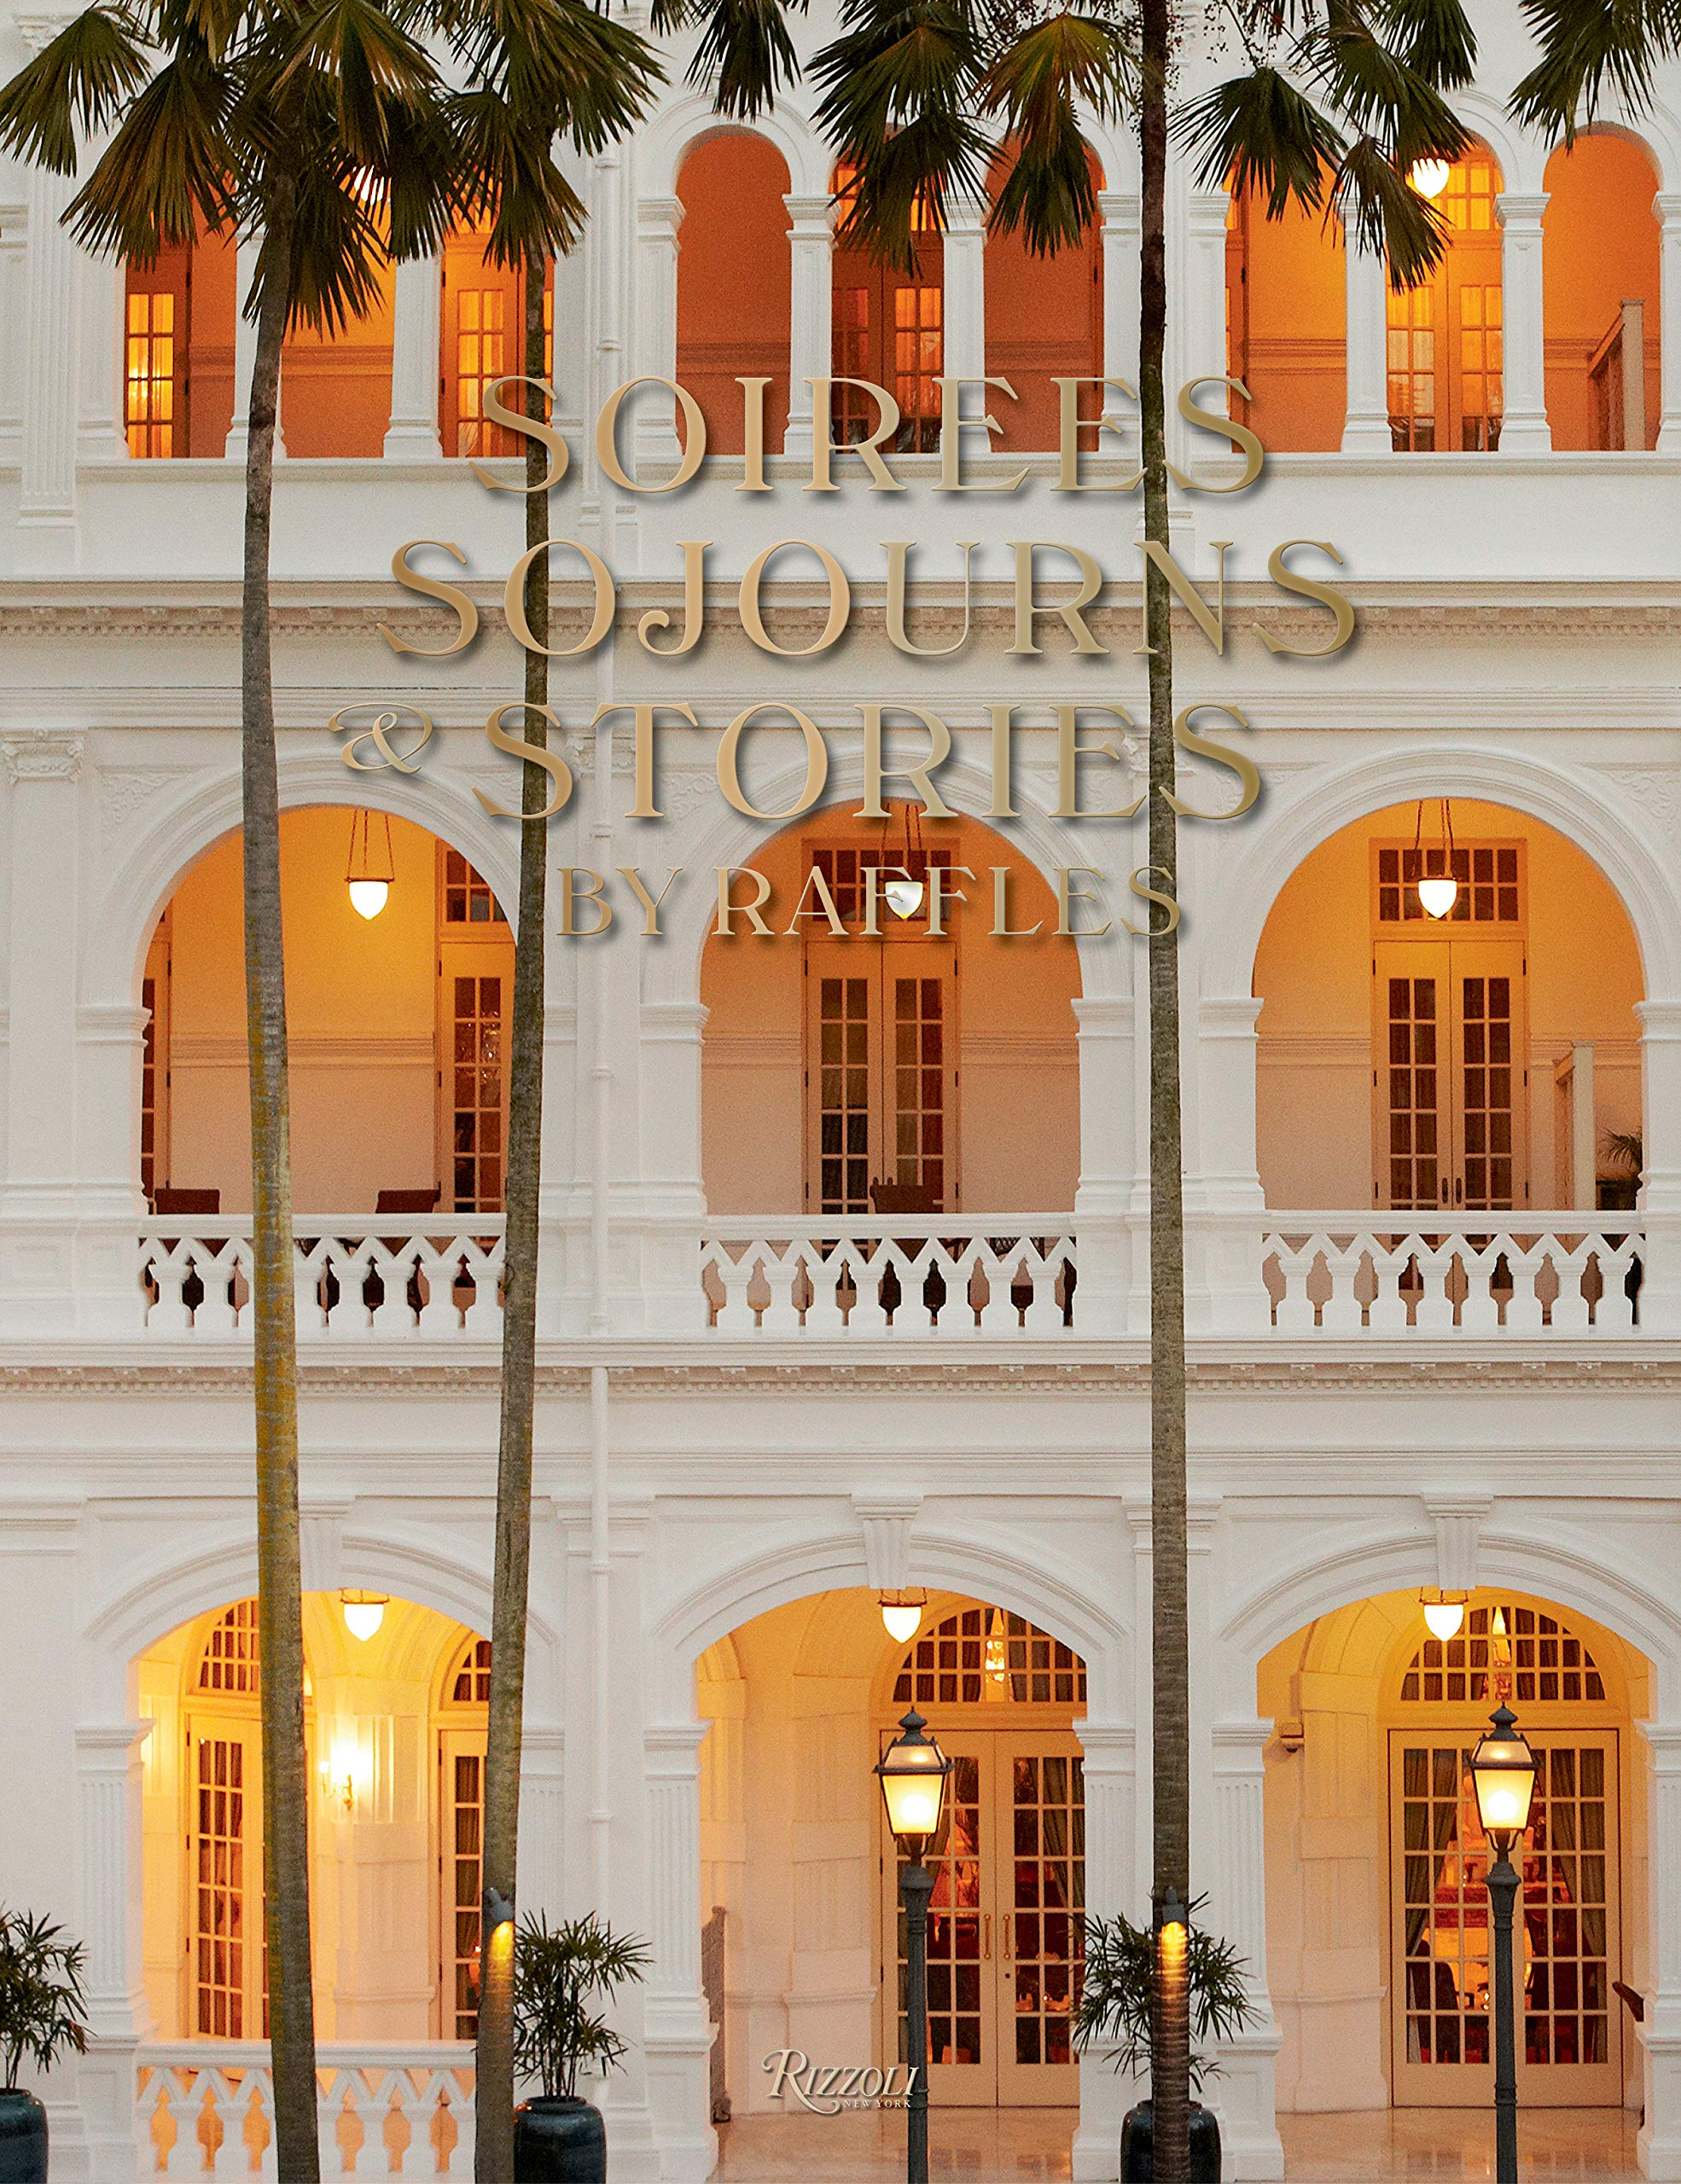 Soirees Sojourns And Stories  By Raffles